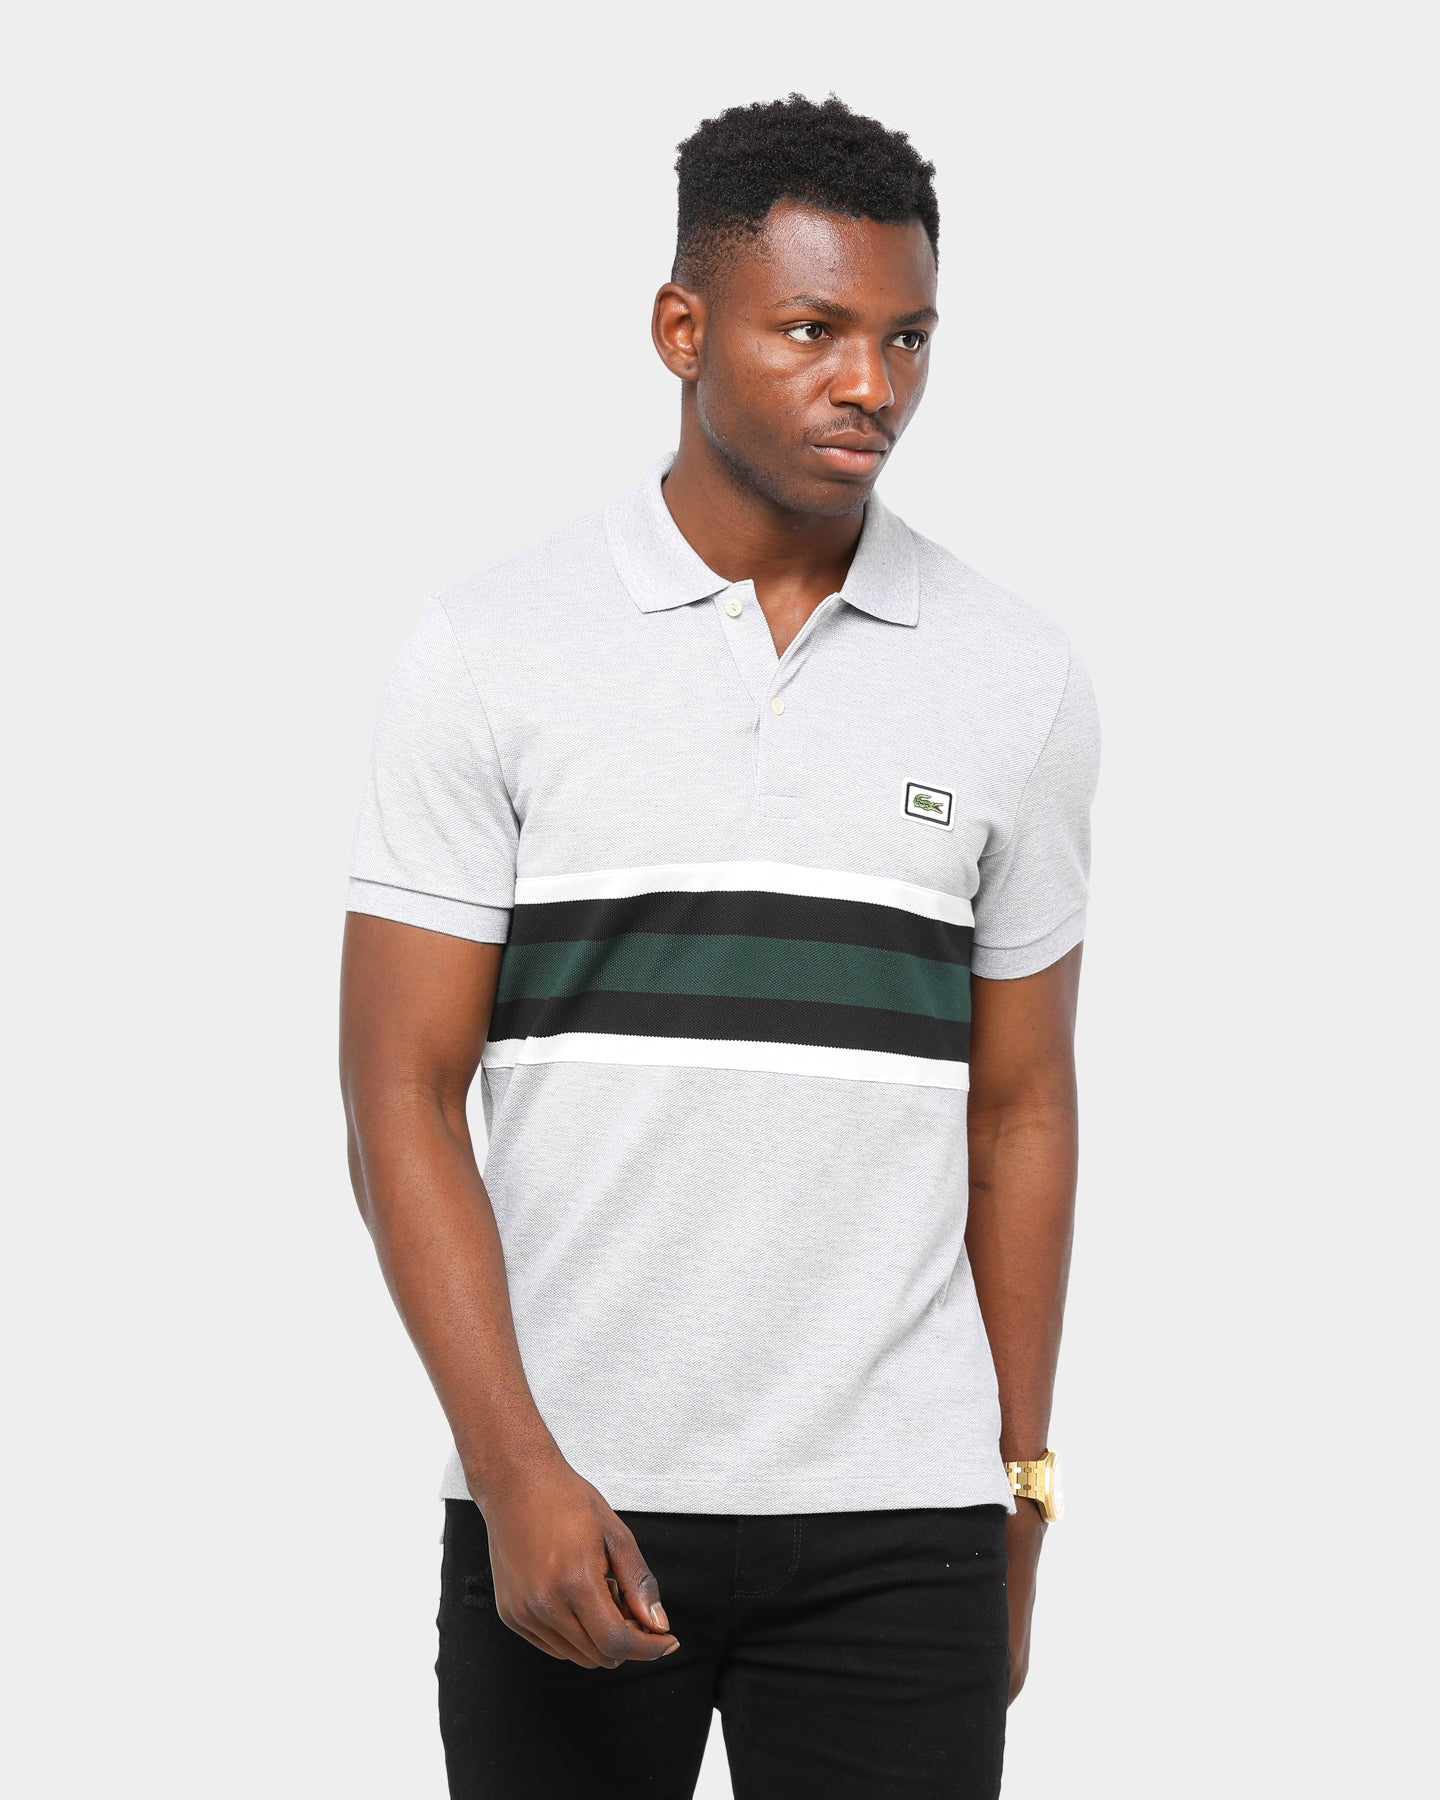 Silver Chine M Lacoste Mens S//S Striped Jersey T-Shirt Regular FIT Shirt